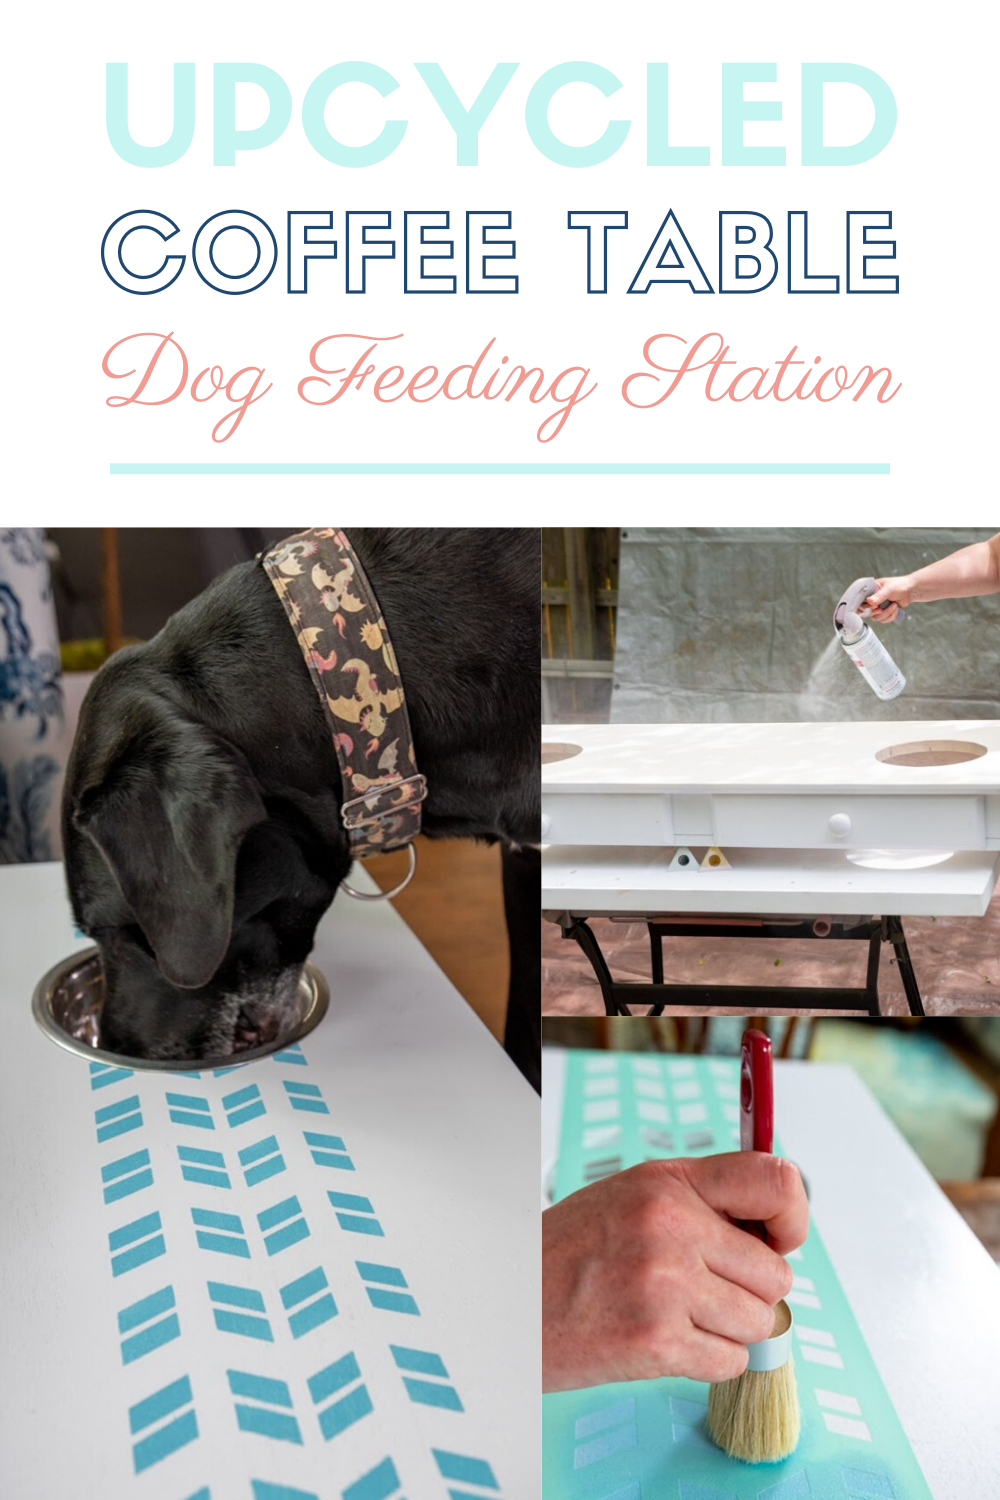 DIY Dog Feeding Station From An Old Coffee Table - The Kingston Home: Fellow dog moms and dads! Tired of buying ugly plastic dog feeders that stick out like a sore thumb? Thanks to Prima Stick & Style Stencils we're taking an old coffee table and turning it in to a beautiful dog feeding station that you'll be proud to show off! via @craftykingstons